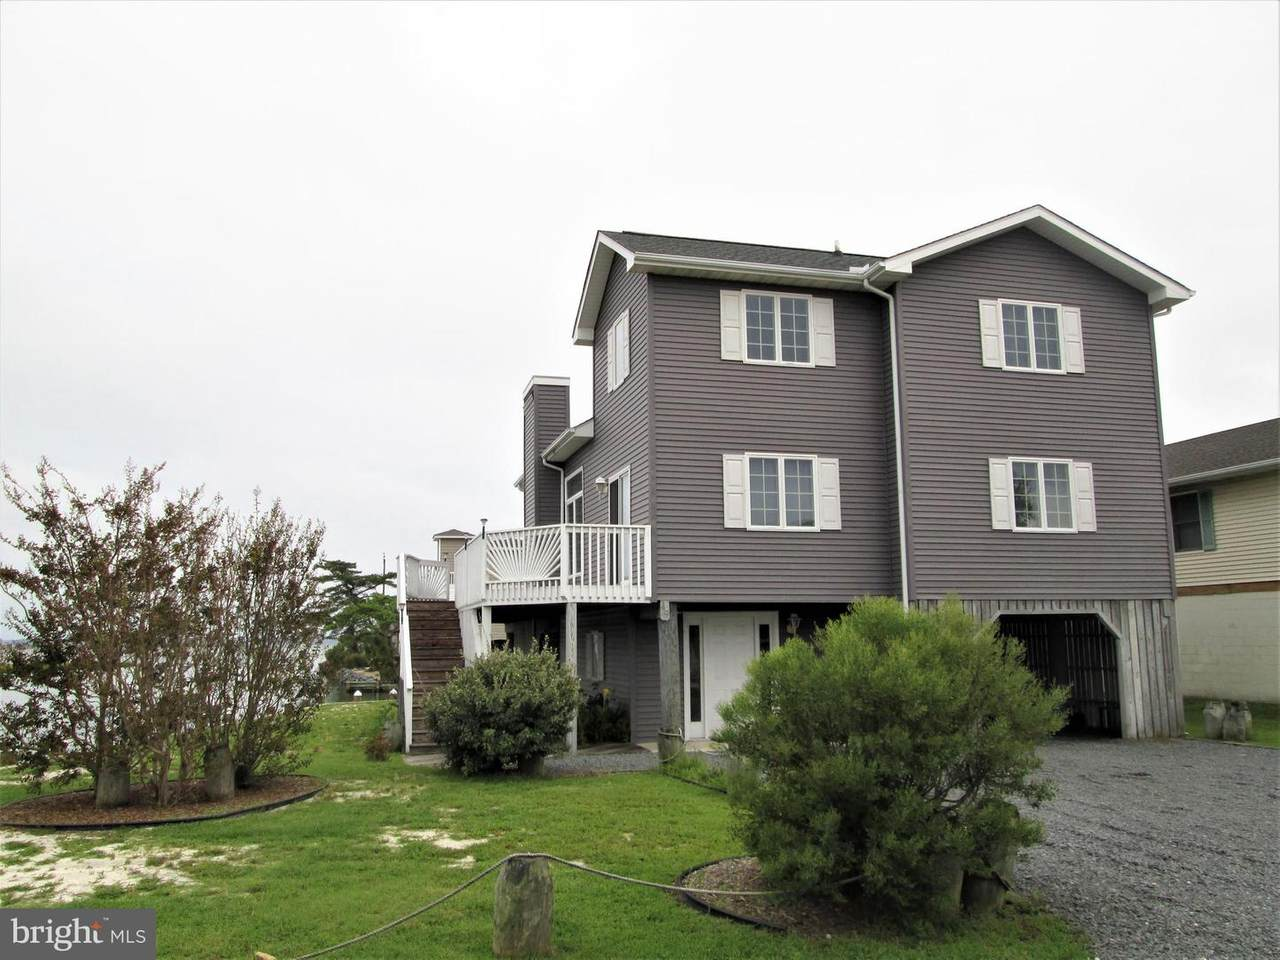 49 Oyster Bay Drive - Photo 1